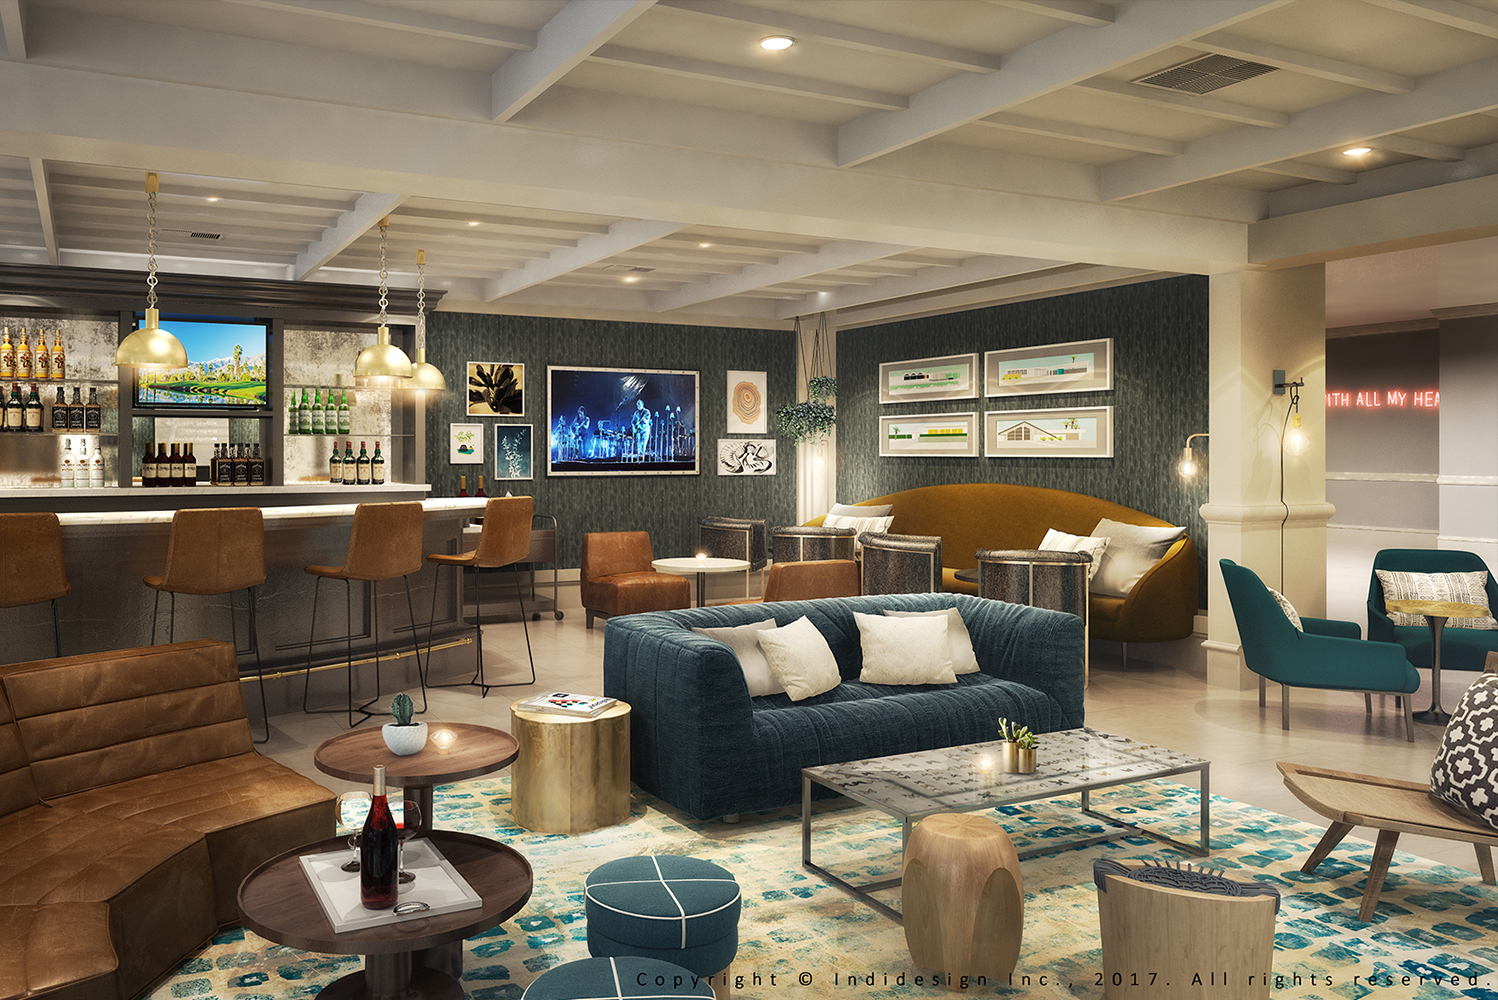 Miramonte Indian Wells Resort & Spa completed an $8 million property-wide renovation.